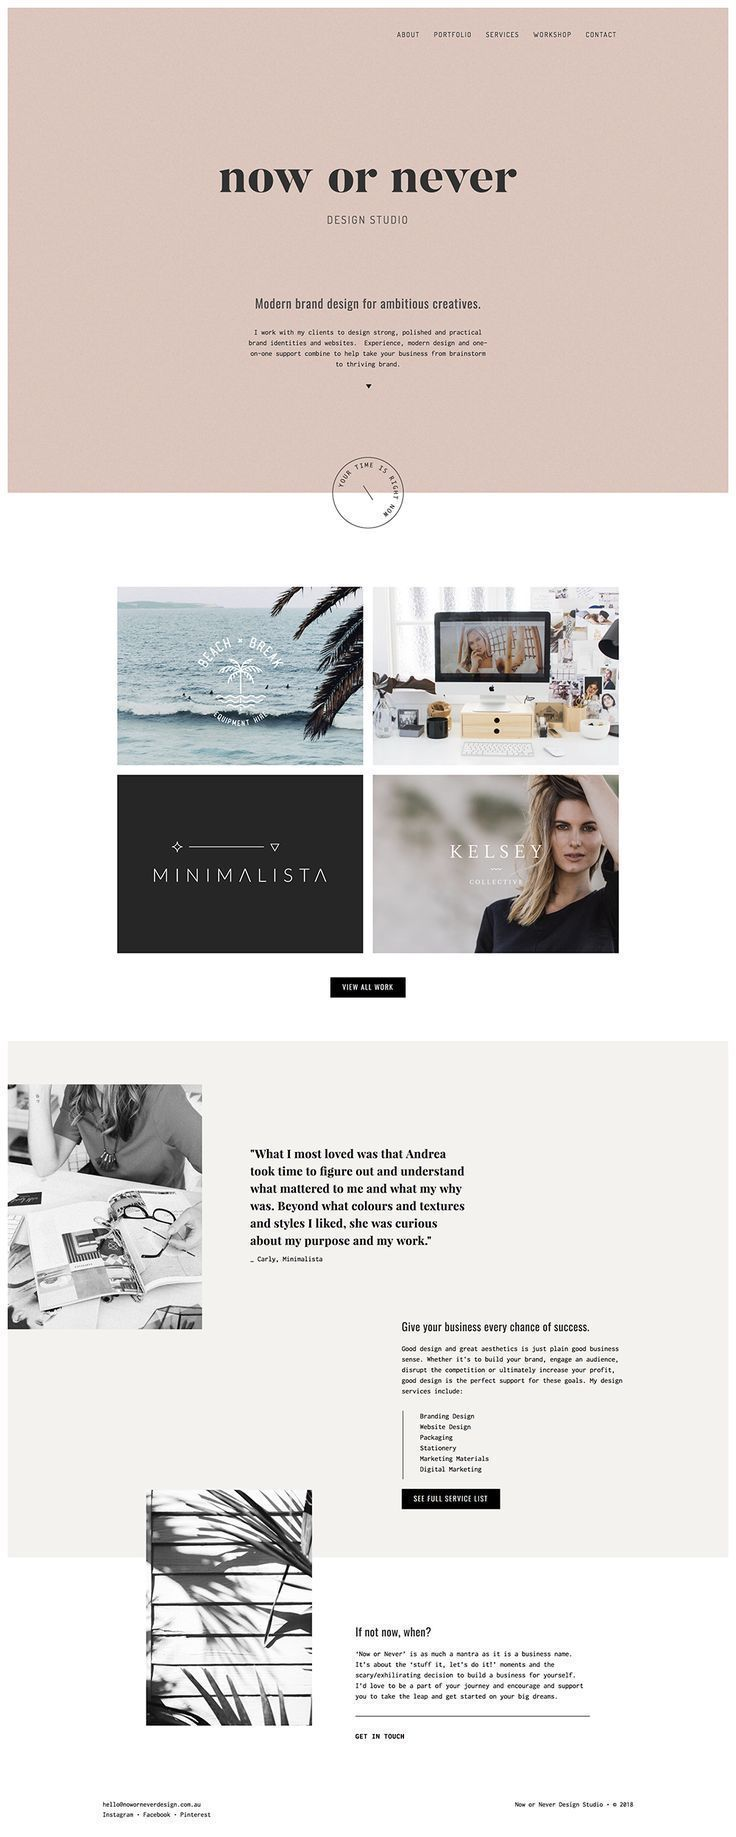 How To Design A Website The 4 Stages Process Web Design Tips In 2020 Web Design Tips Web Design Responsive Web Design